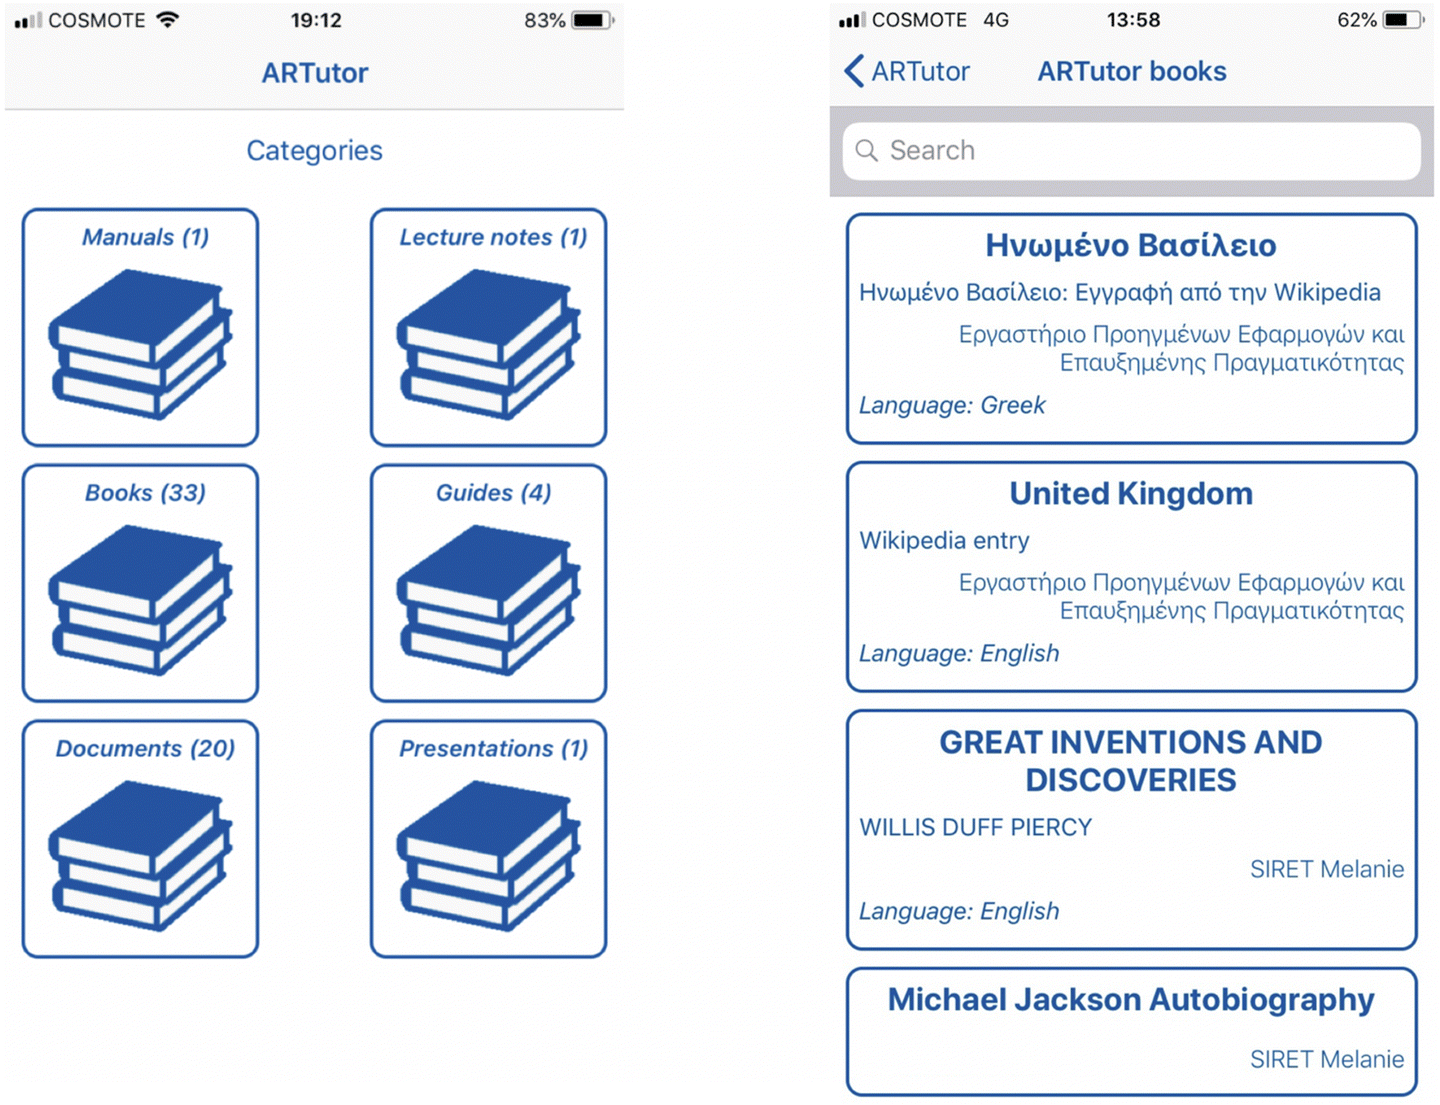 Evaluation of the ARTutor augmented reality educational